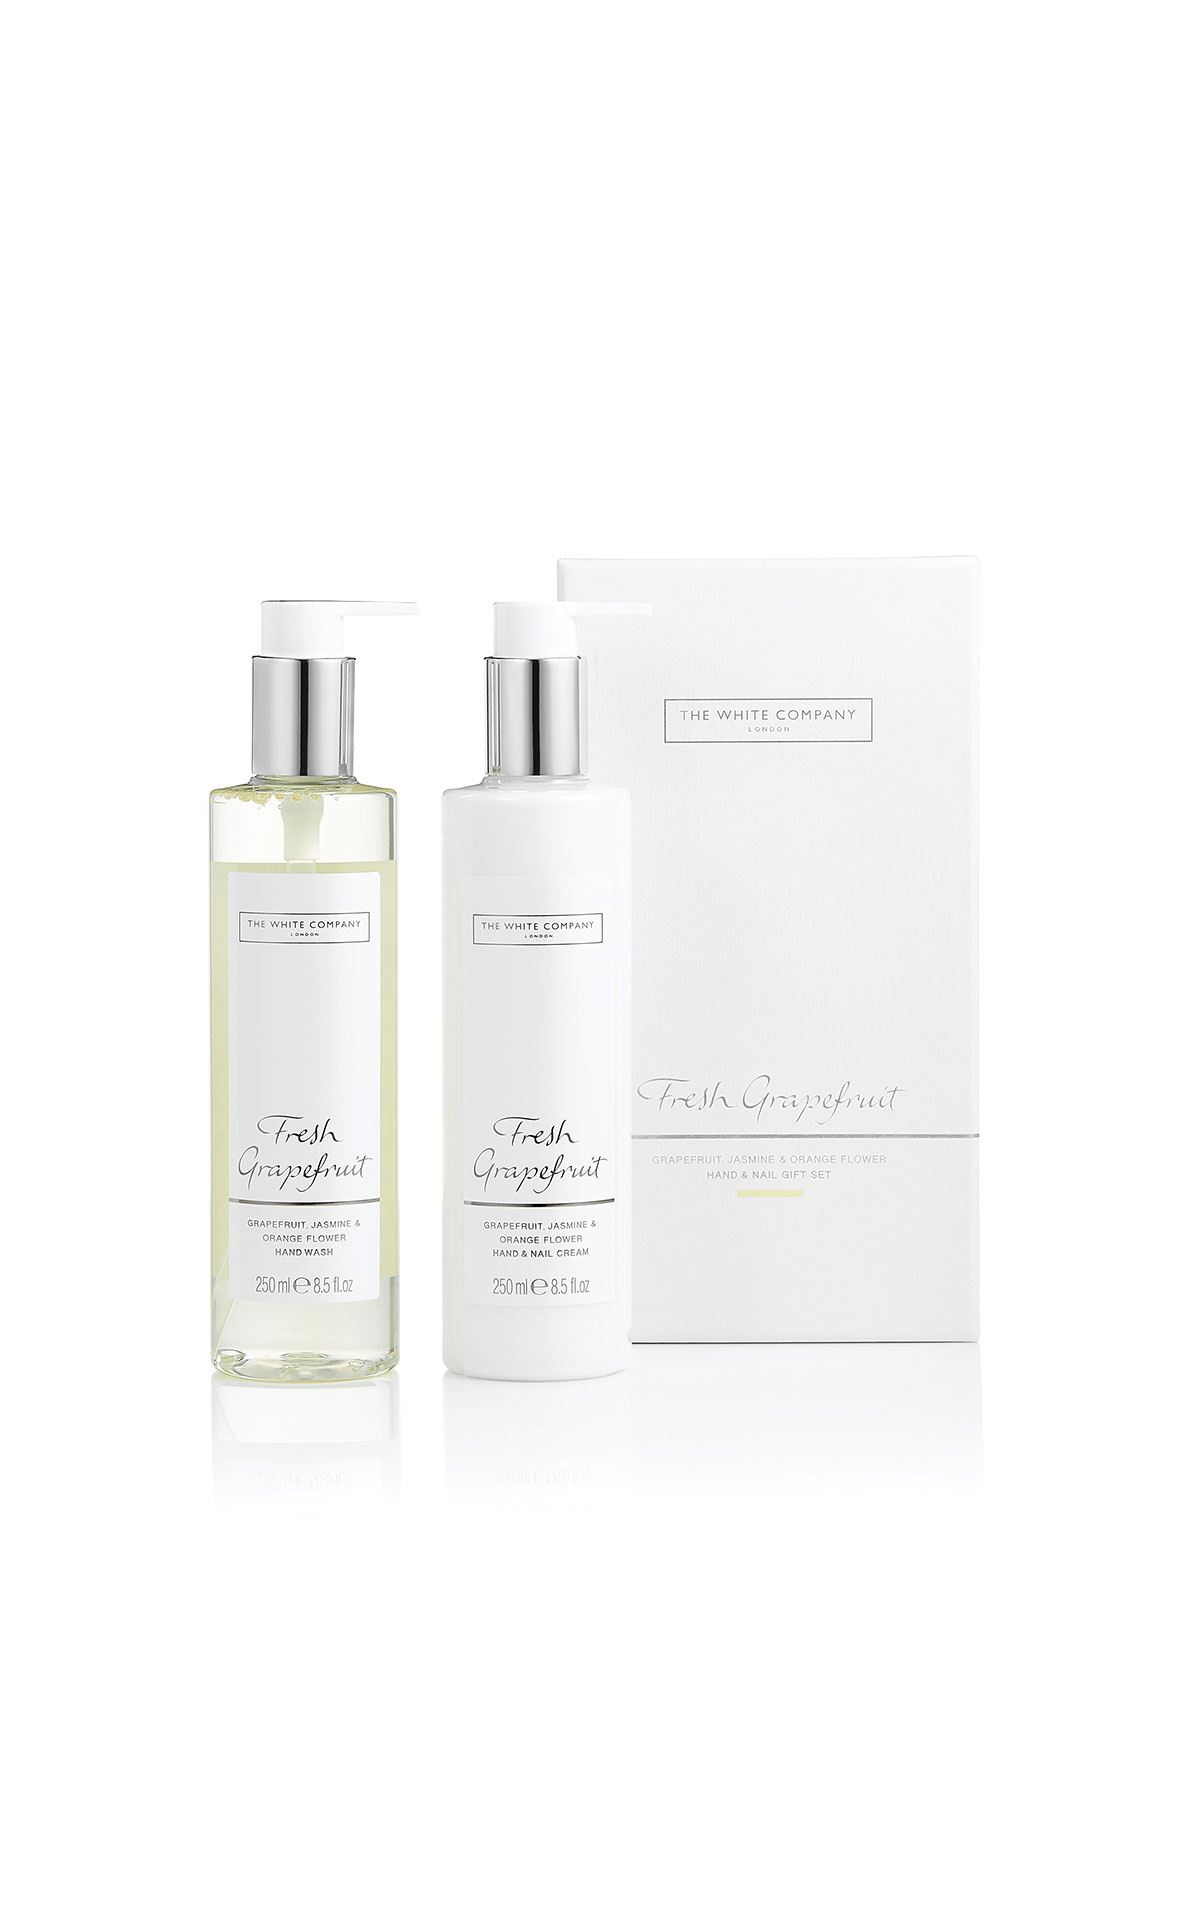 The White Company Fresh grapefruit hand & nail set from Bicester Village